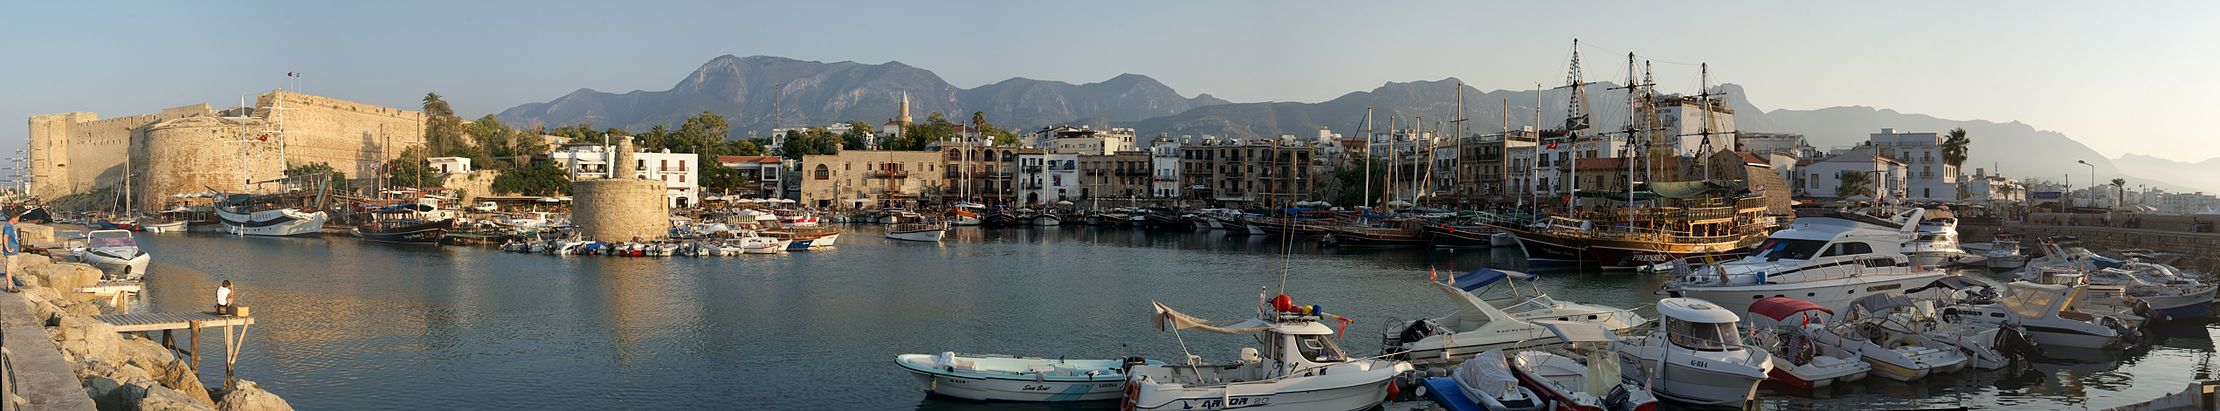 Panoramic view of the Kyrenia Harbour, with the Venetian era Kyrenia Castle on the far left, and the Kyrenia Mountains in the background.